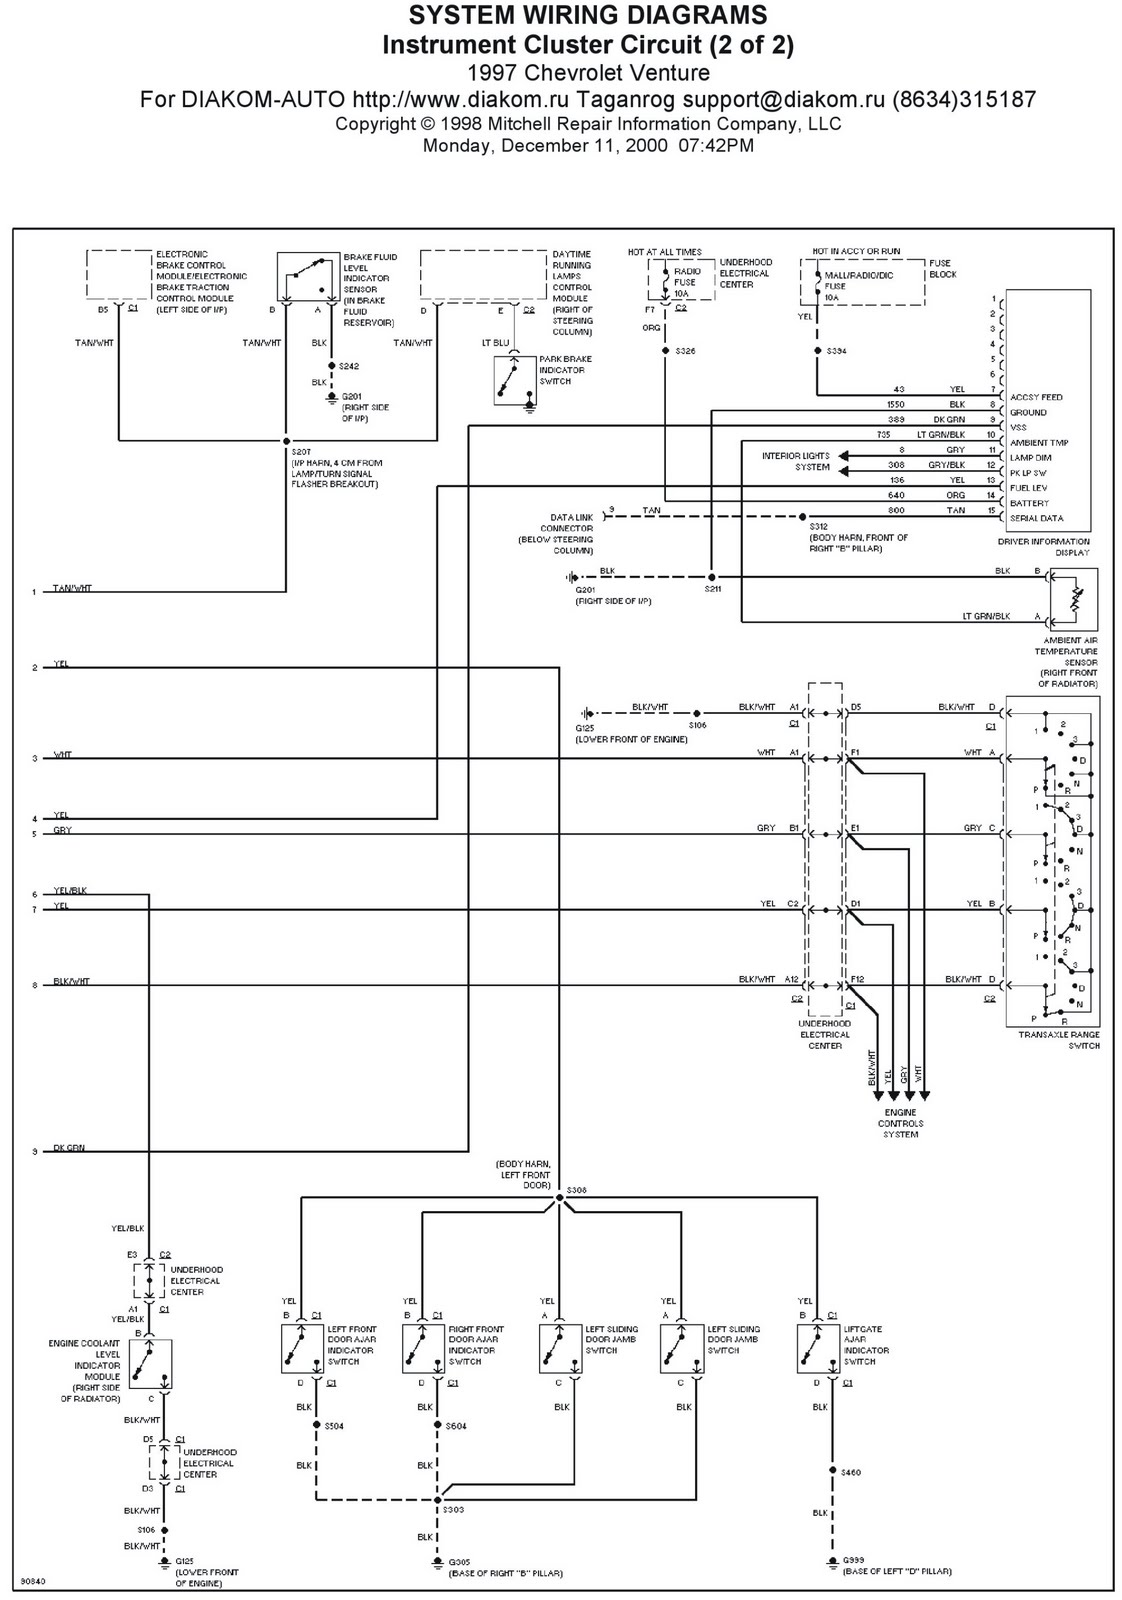 August 2011 Schematic Wiring Diagrams Solutions Ford Fiesta Diagram Pdf 1997 Chevrolet Venture Instrument Cluster Circuit System Part 2